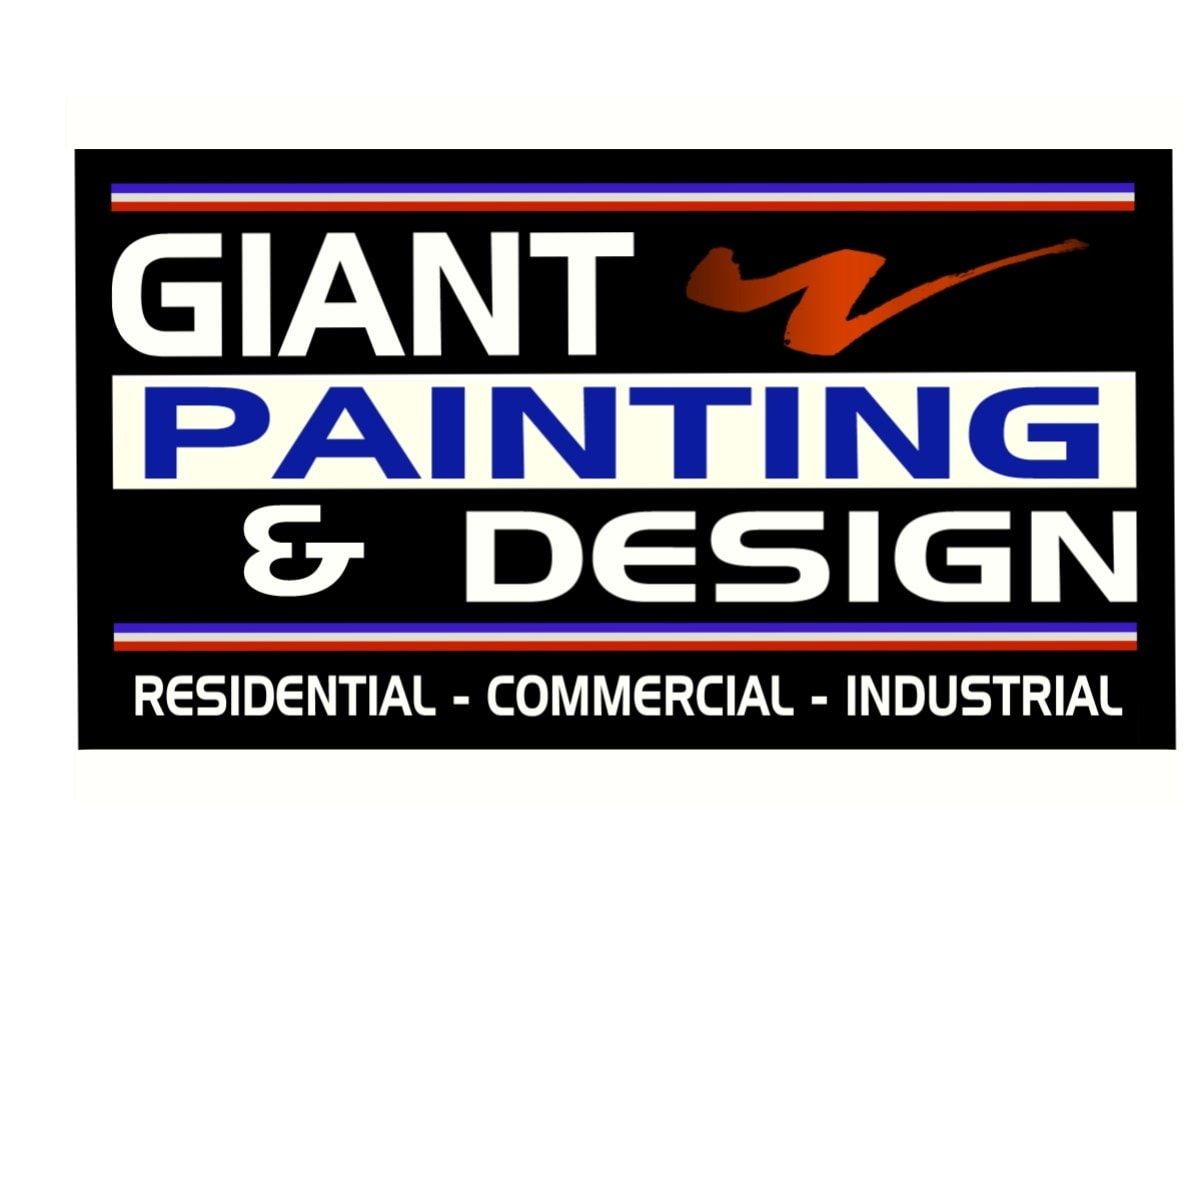 GIANT Painting & Design